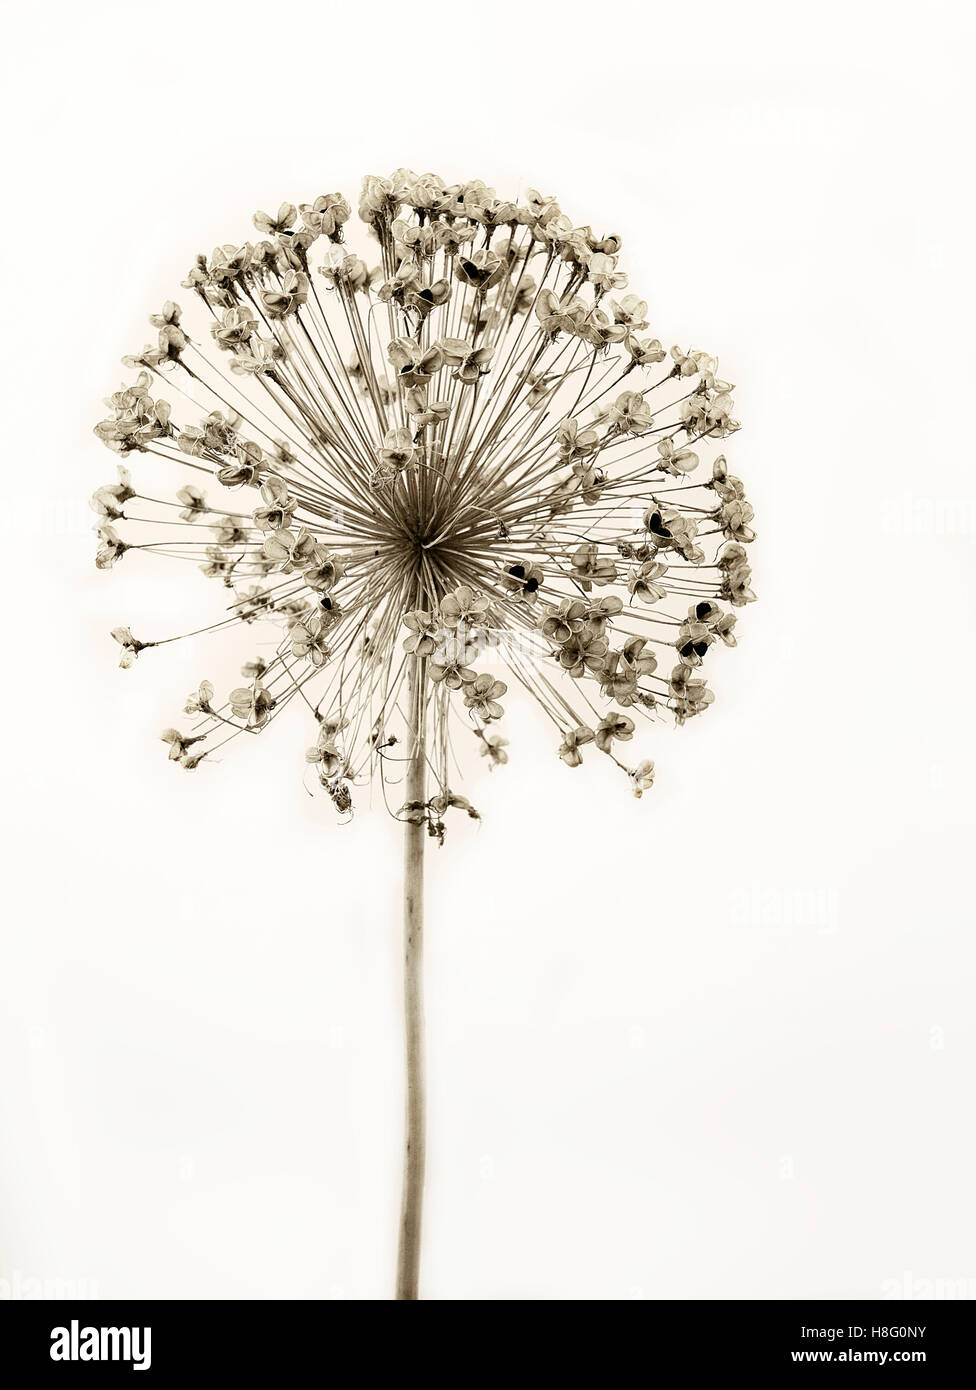 Aesthetic, dried ornamental onion in black and white, cut out in front of a neutral backround Stock Photo